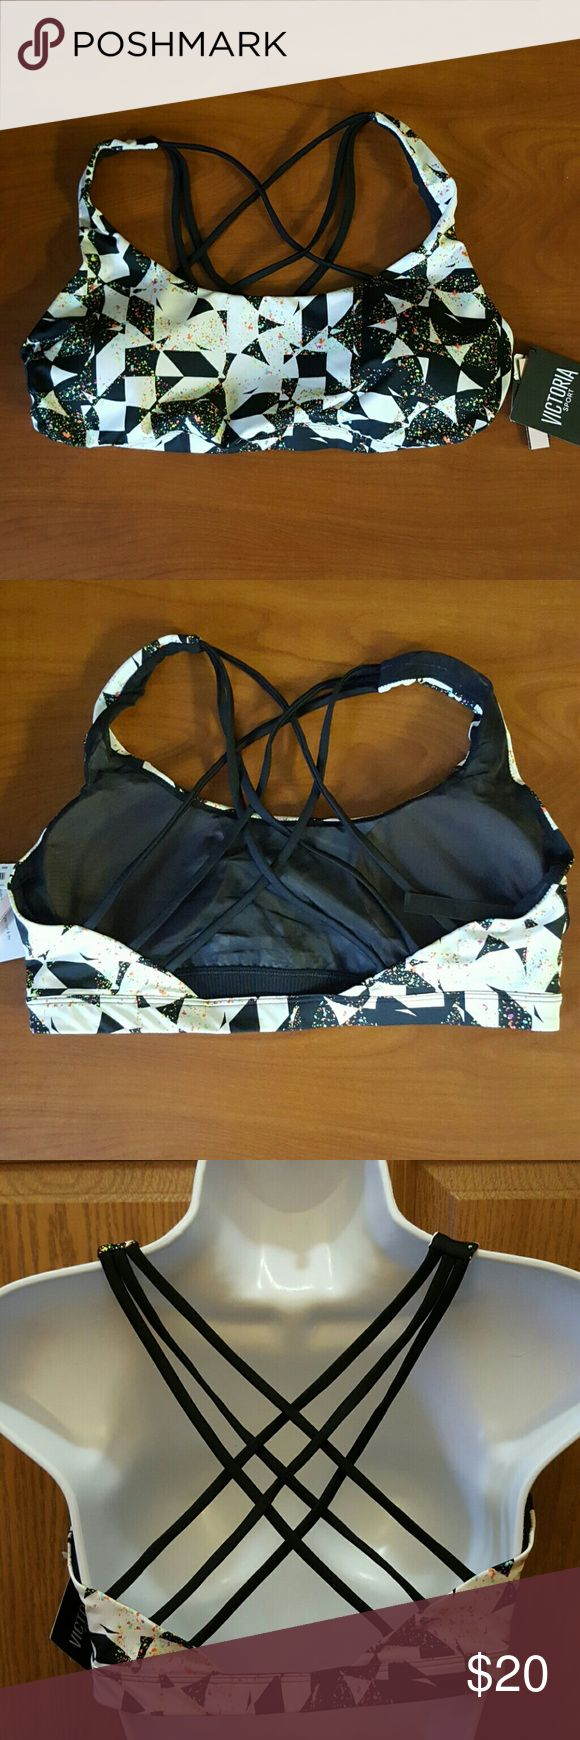 💛VSX Sport NWT Multi-colored Sports Bra Size L Description: -NWT -Brand: Victoria's Secret  -Size: Large -Color: White, Black, Green, Pink, Yellow -Beautiful Sports Bra! -Body-Wick keeps you cool and dry     Made in Sri Lanka. Victoria's Secret Intimates & Sleepwear Bras